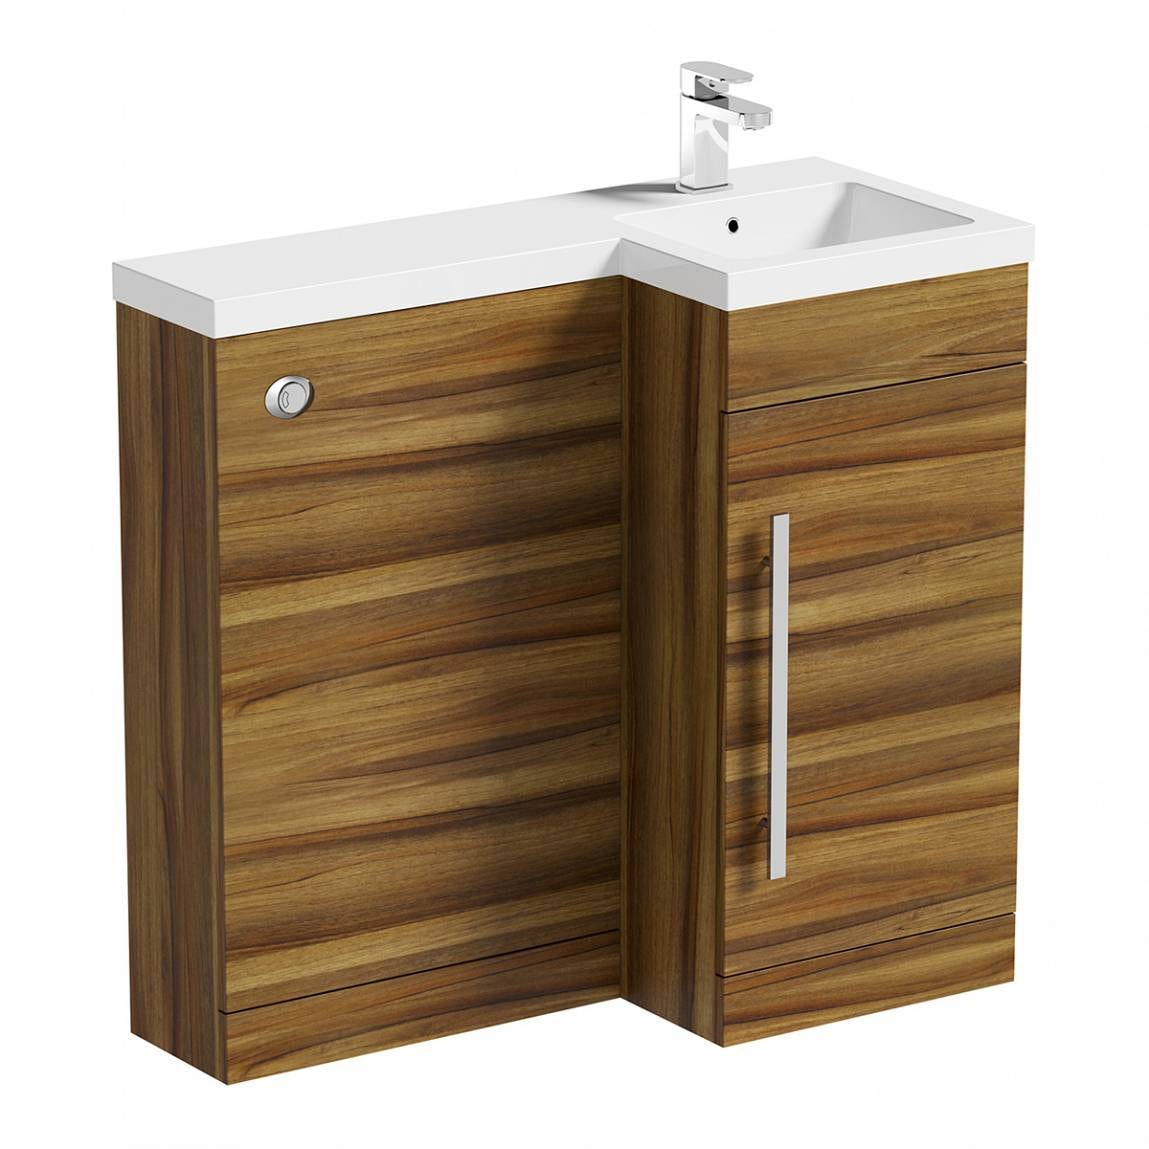 MySpace Walnut Combination Unit RH including Concealed Cistern